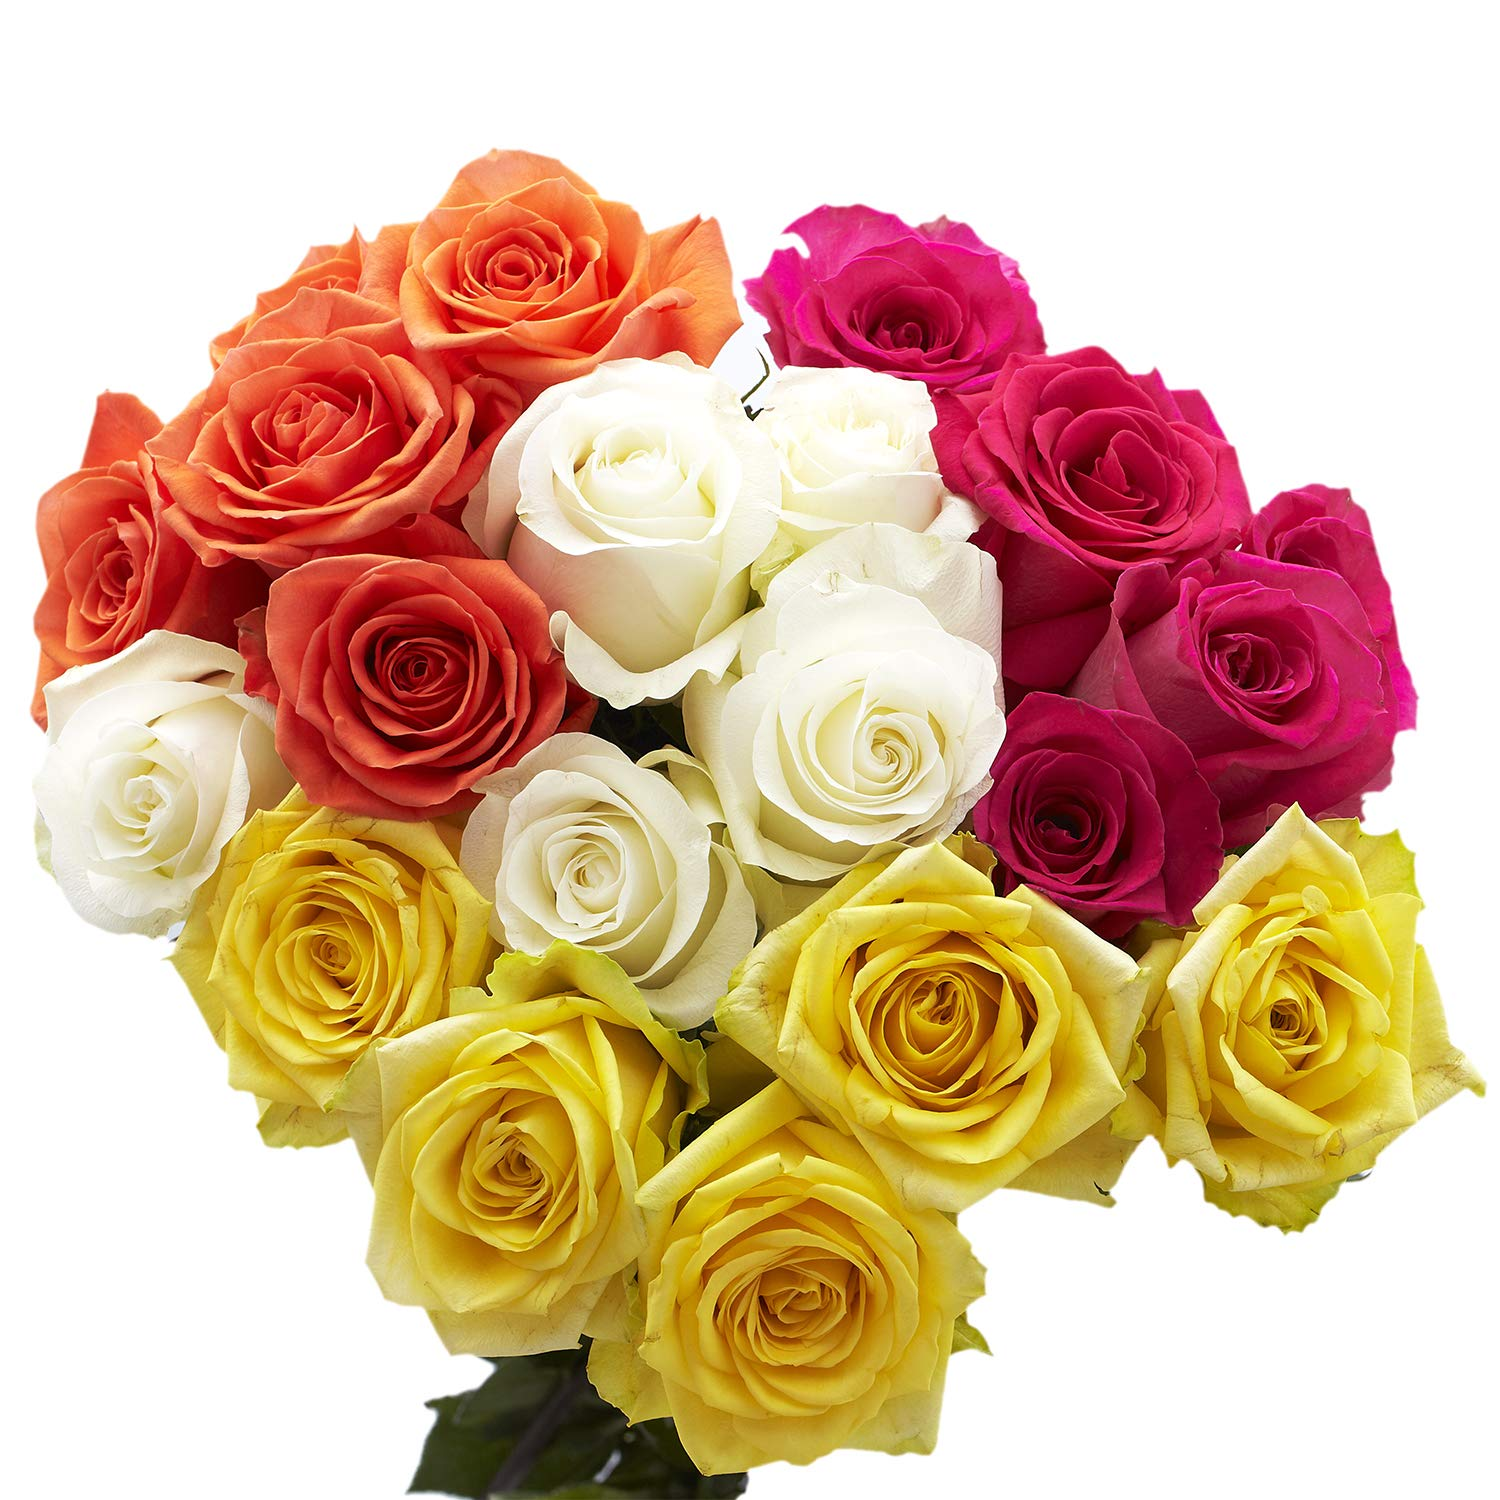 75 Fresh Cut Assorted Color Roses Flowers Long - for Max 71% OFF discount Stem